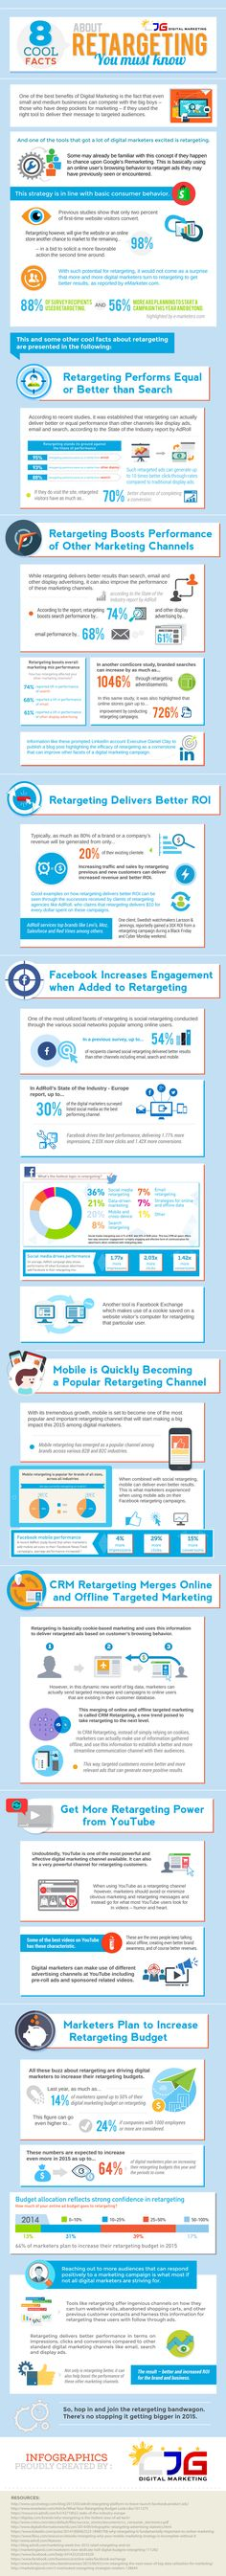 8-Cool-Facts-about-Retargeting-You-Must-Know